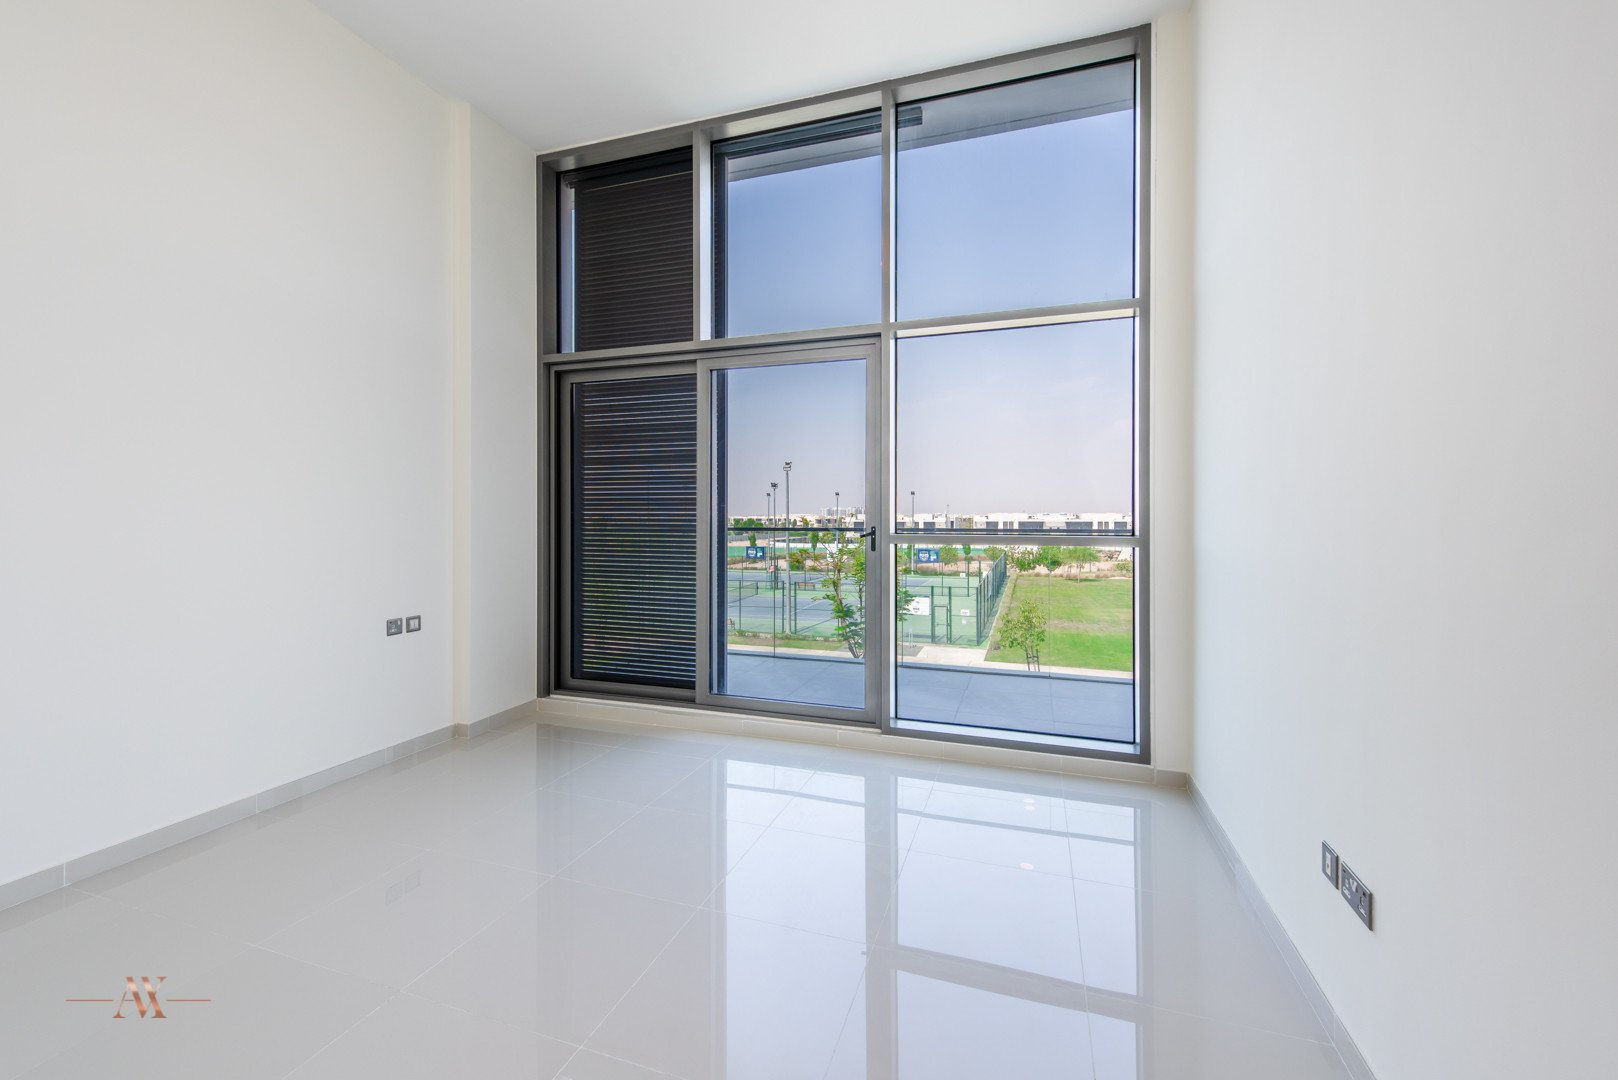 Townhouse for sale in Dubai, UAE, 3 bedrooms, 362.9 m2, No. 23666 – photo 10